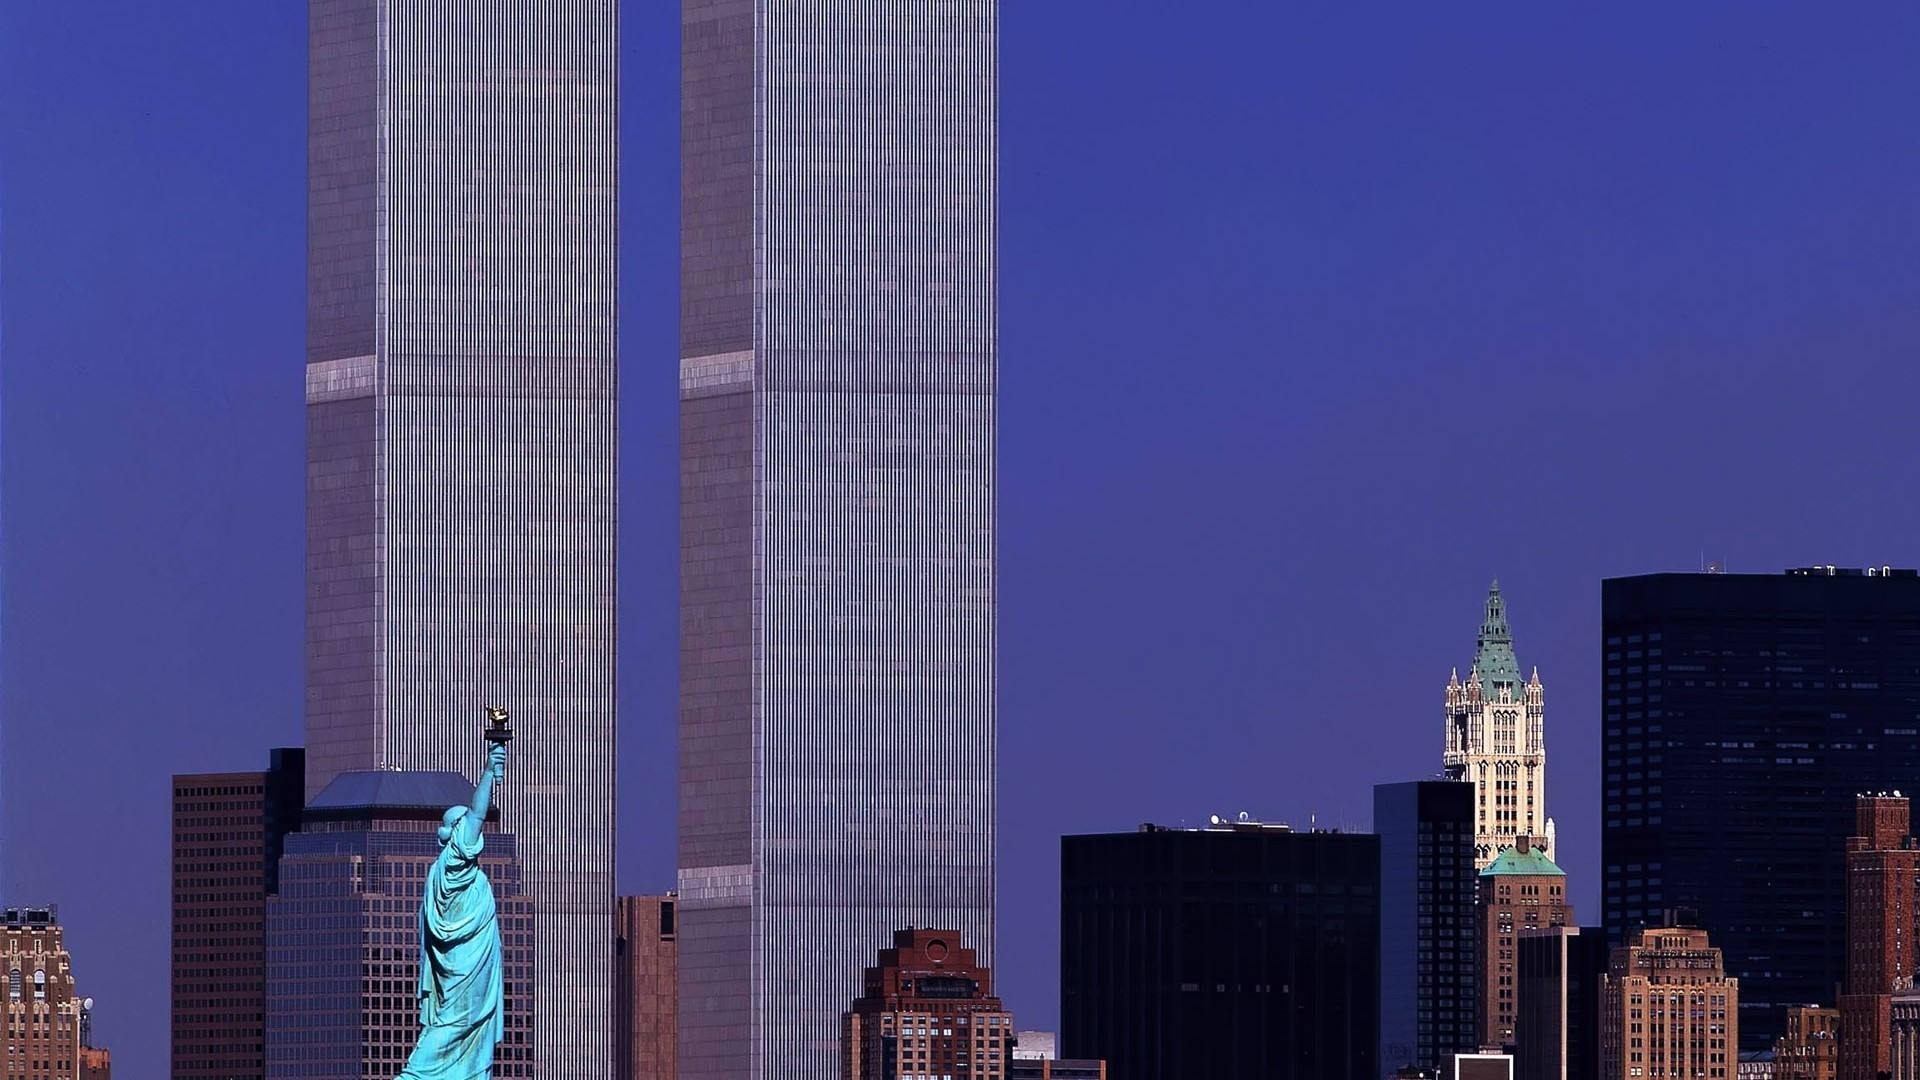 Memorials and services for the September 11 attacks